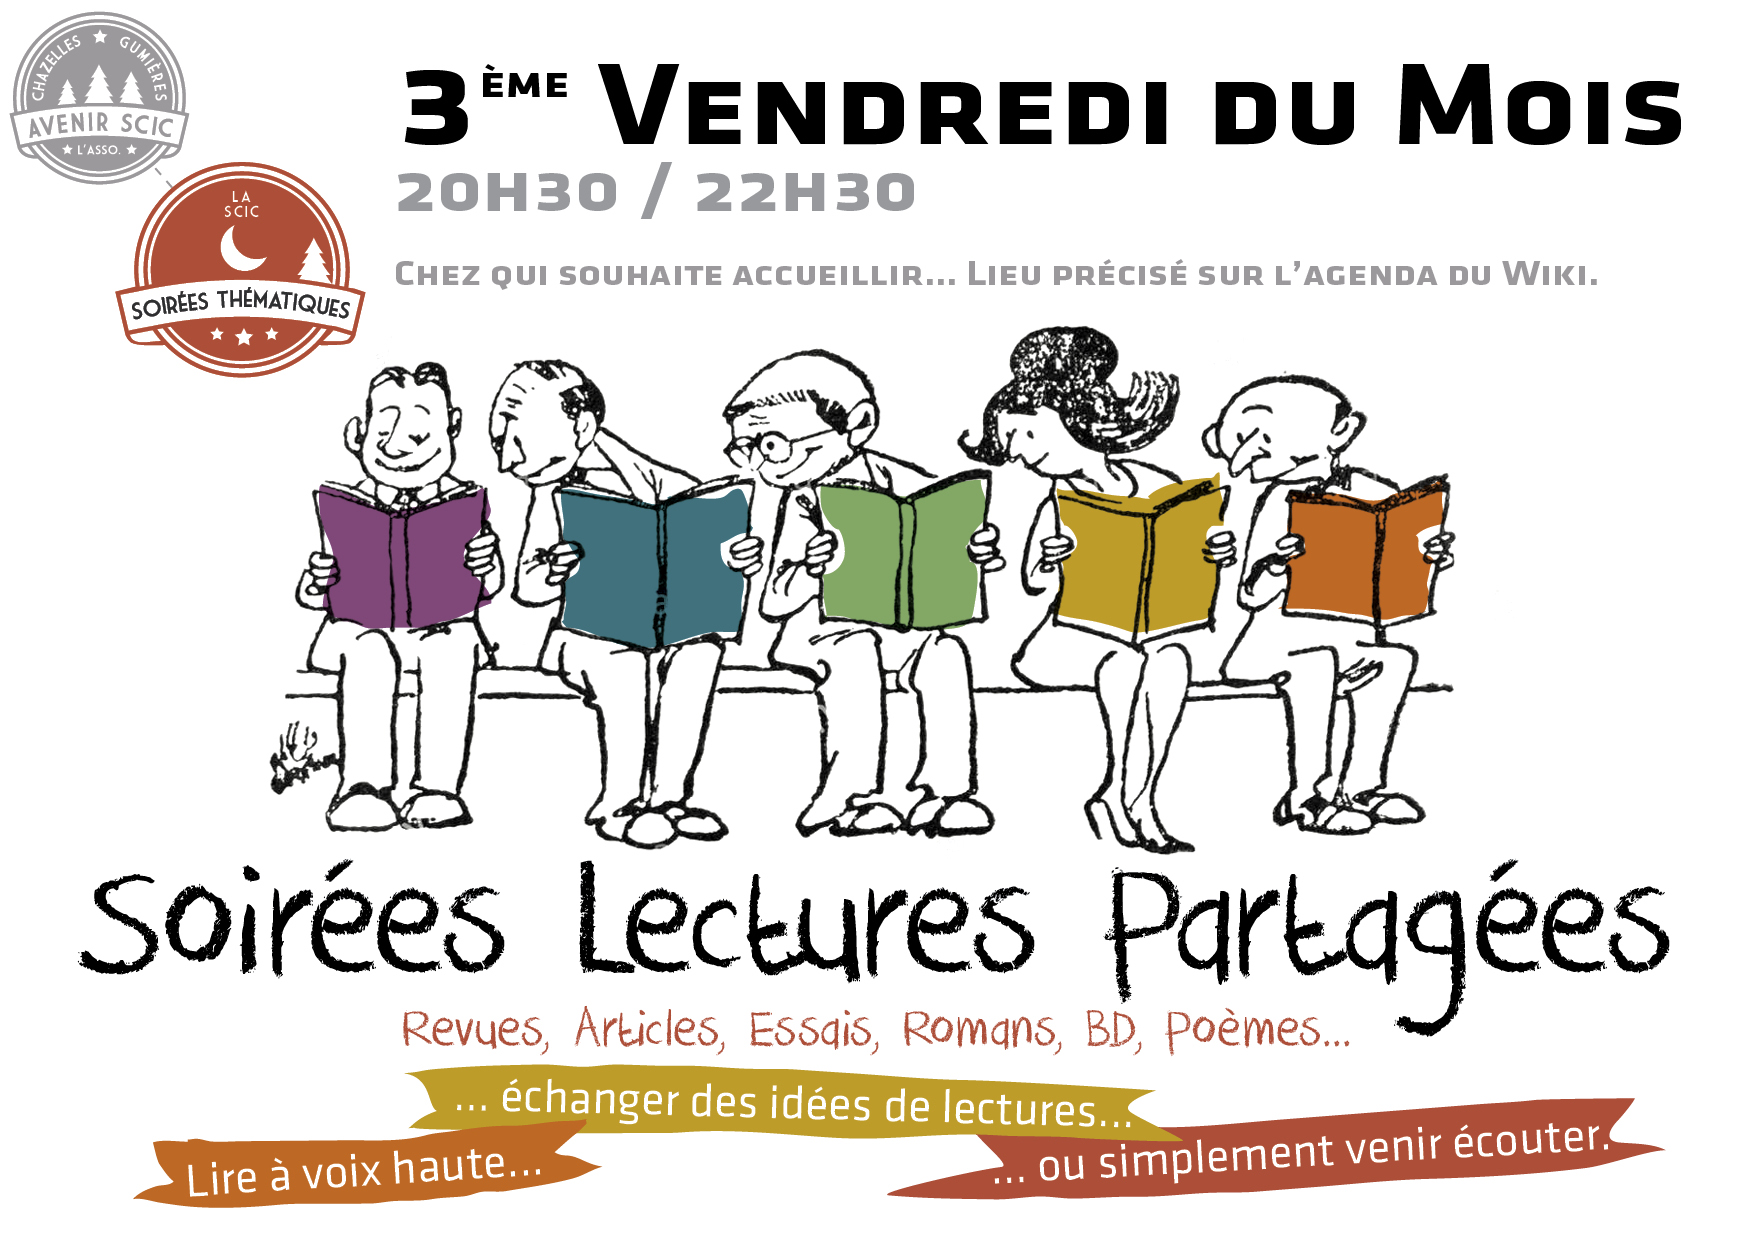 image affiche_soirees_lecture.jpg (0.7MB)